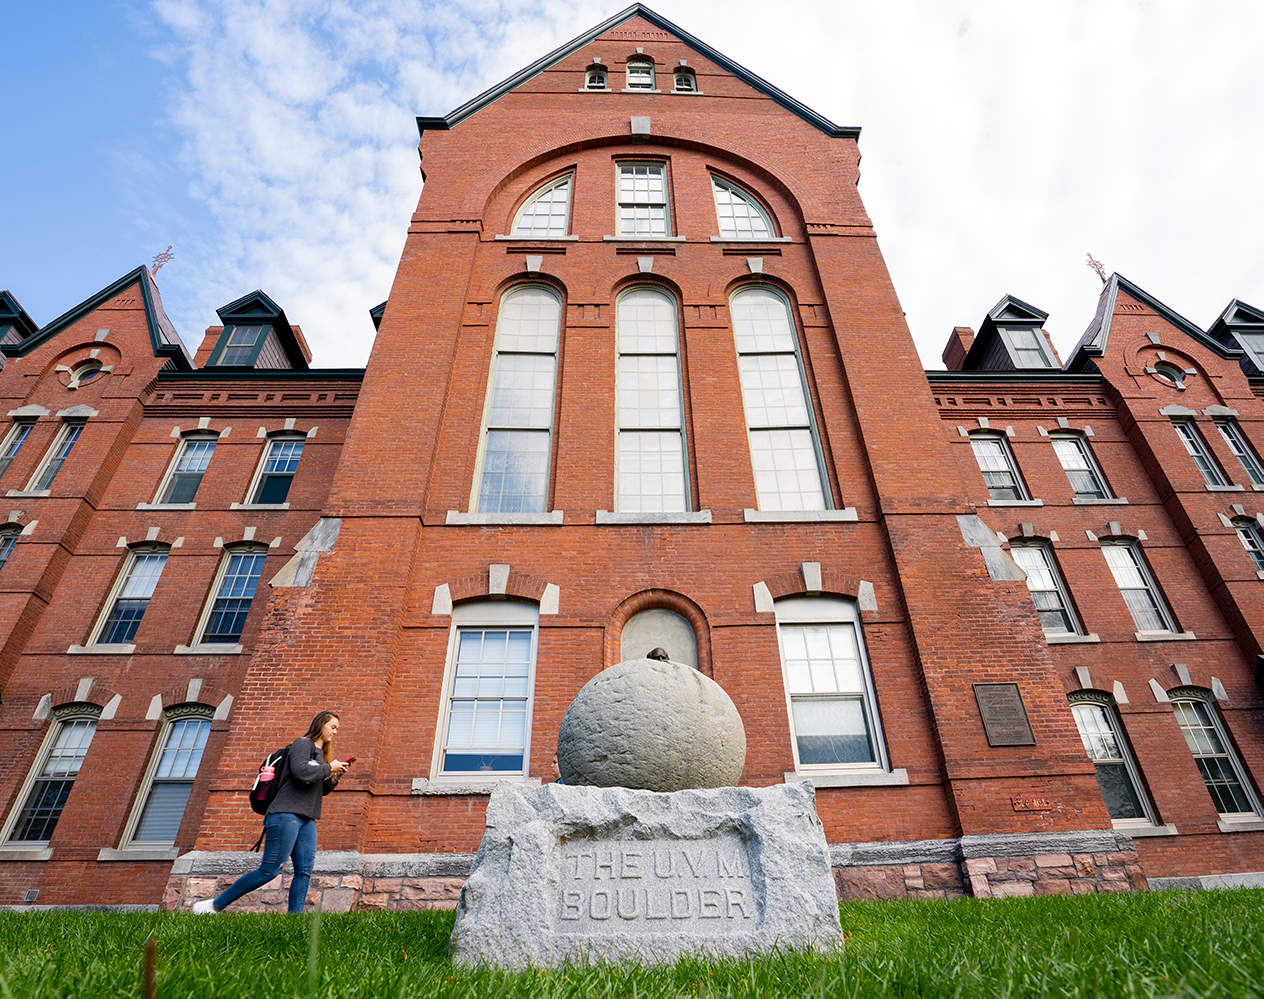 The UVM boulder sits on its base outside Old Mill, Oct. 11. The boulder, being perfectly round, symbolises well-roundedness at the University.